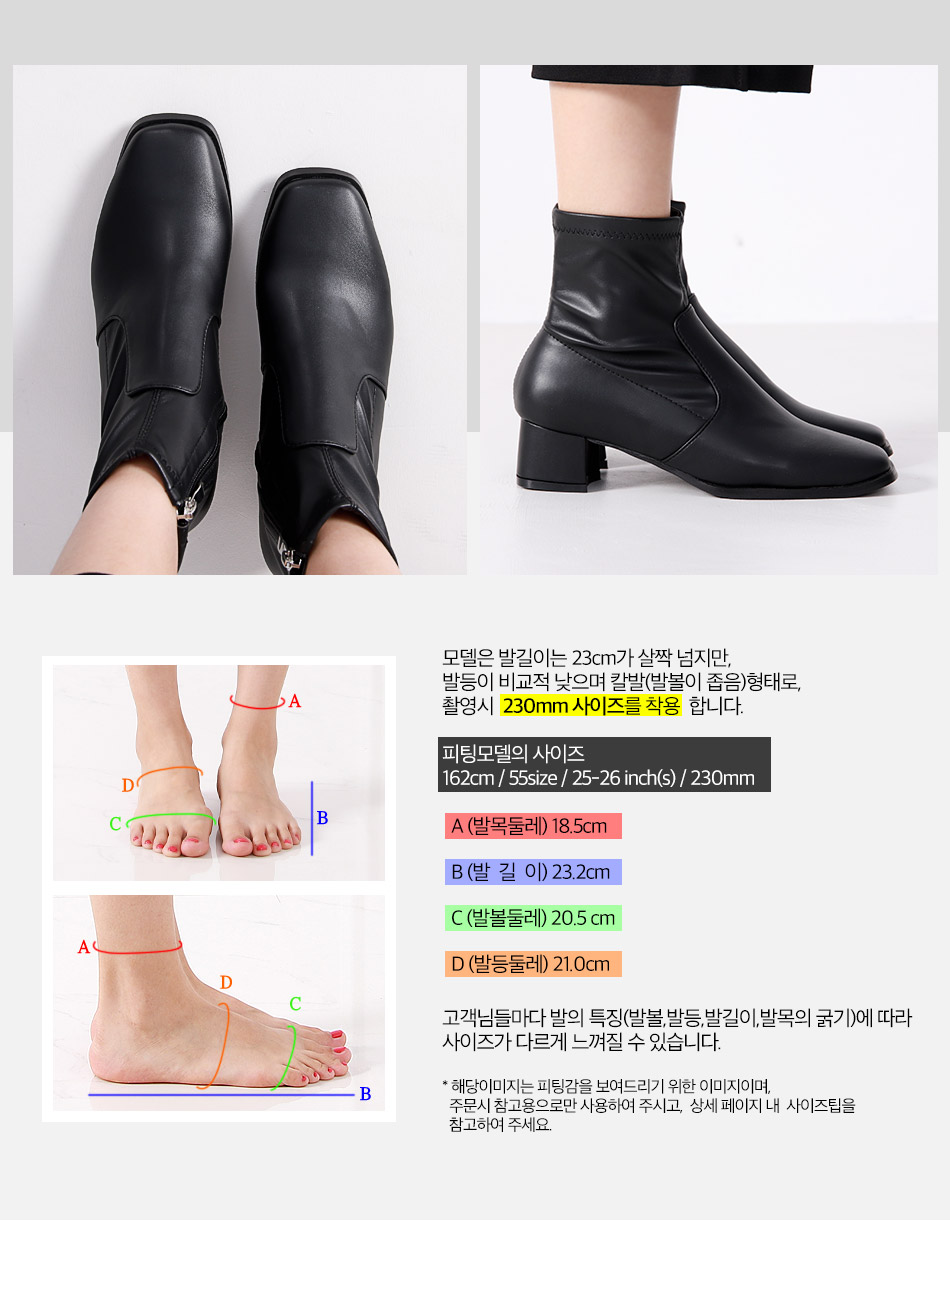 Isshu 2 Material Square Nose Low Heel Zipper Socks Boots 1873